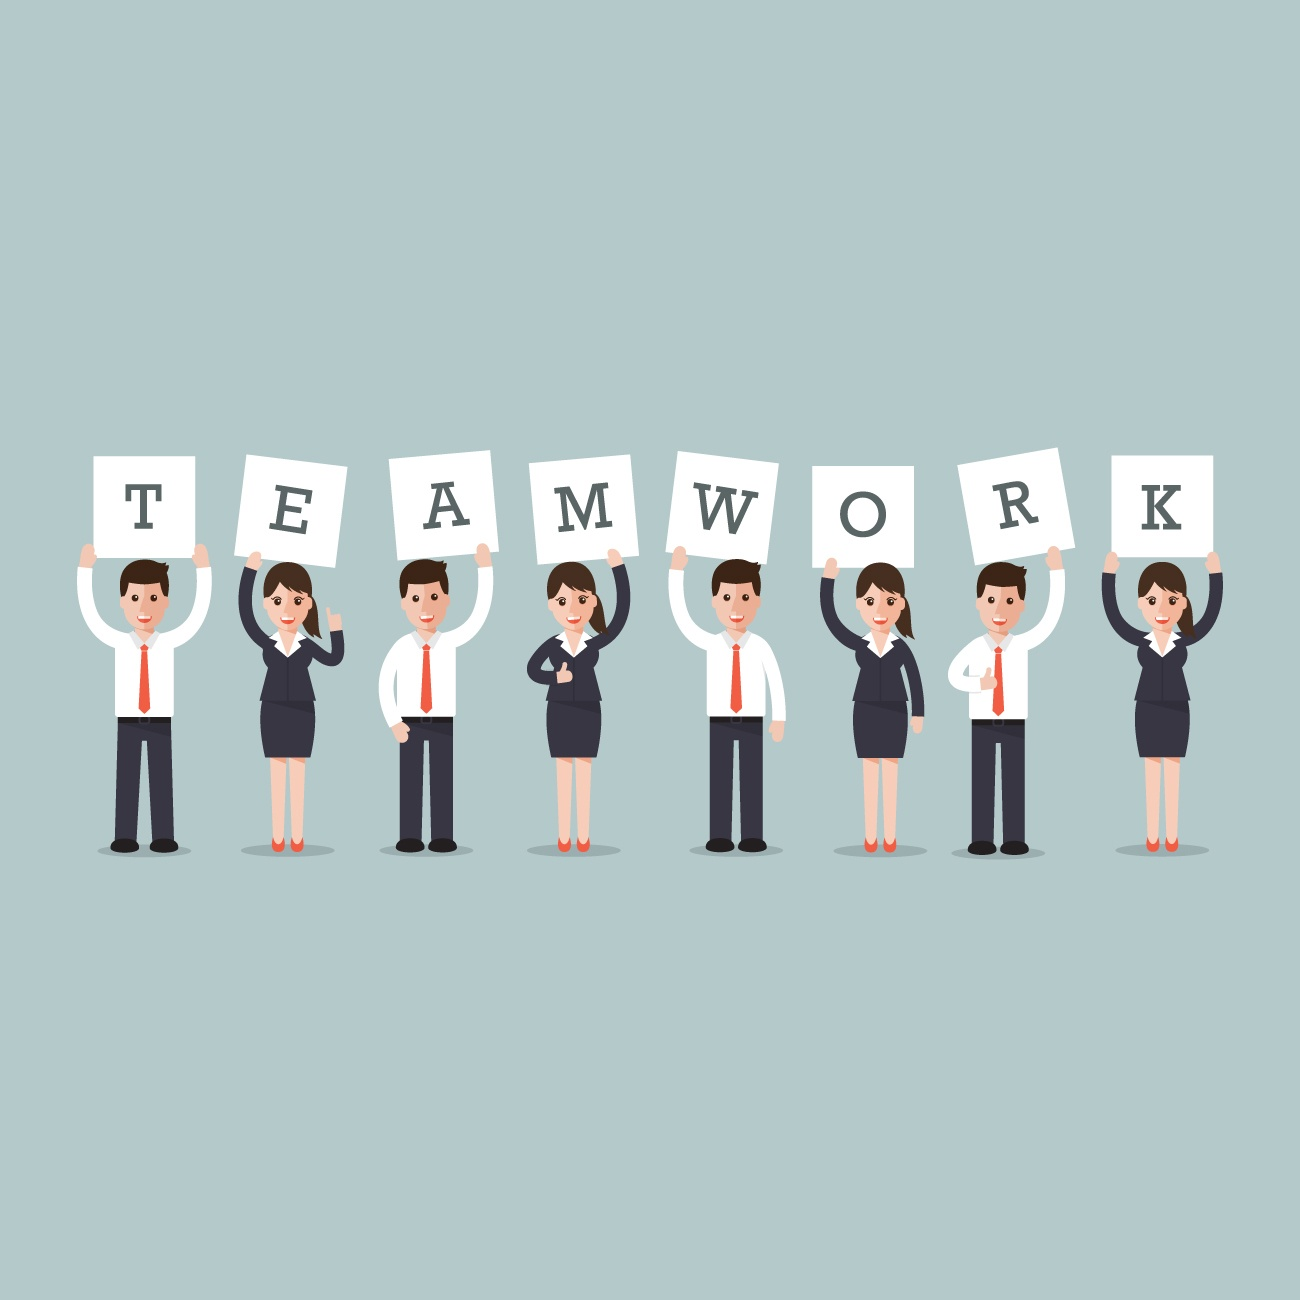 <a href=&quot;http://www.freepik.com/free-vector/business-men-and-women-with-the-word-teamwork_958505.htm&quot;>Designed by Freepik</a>